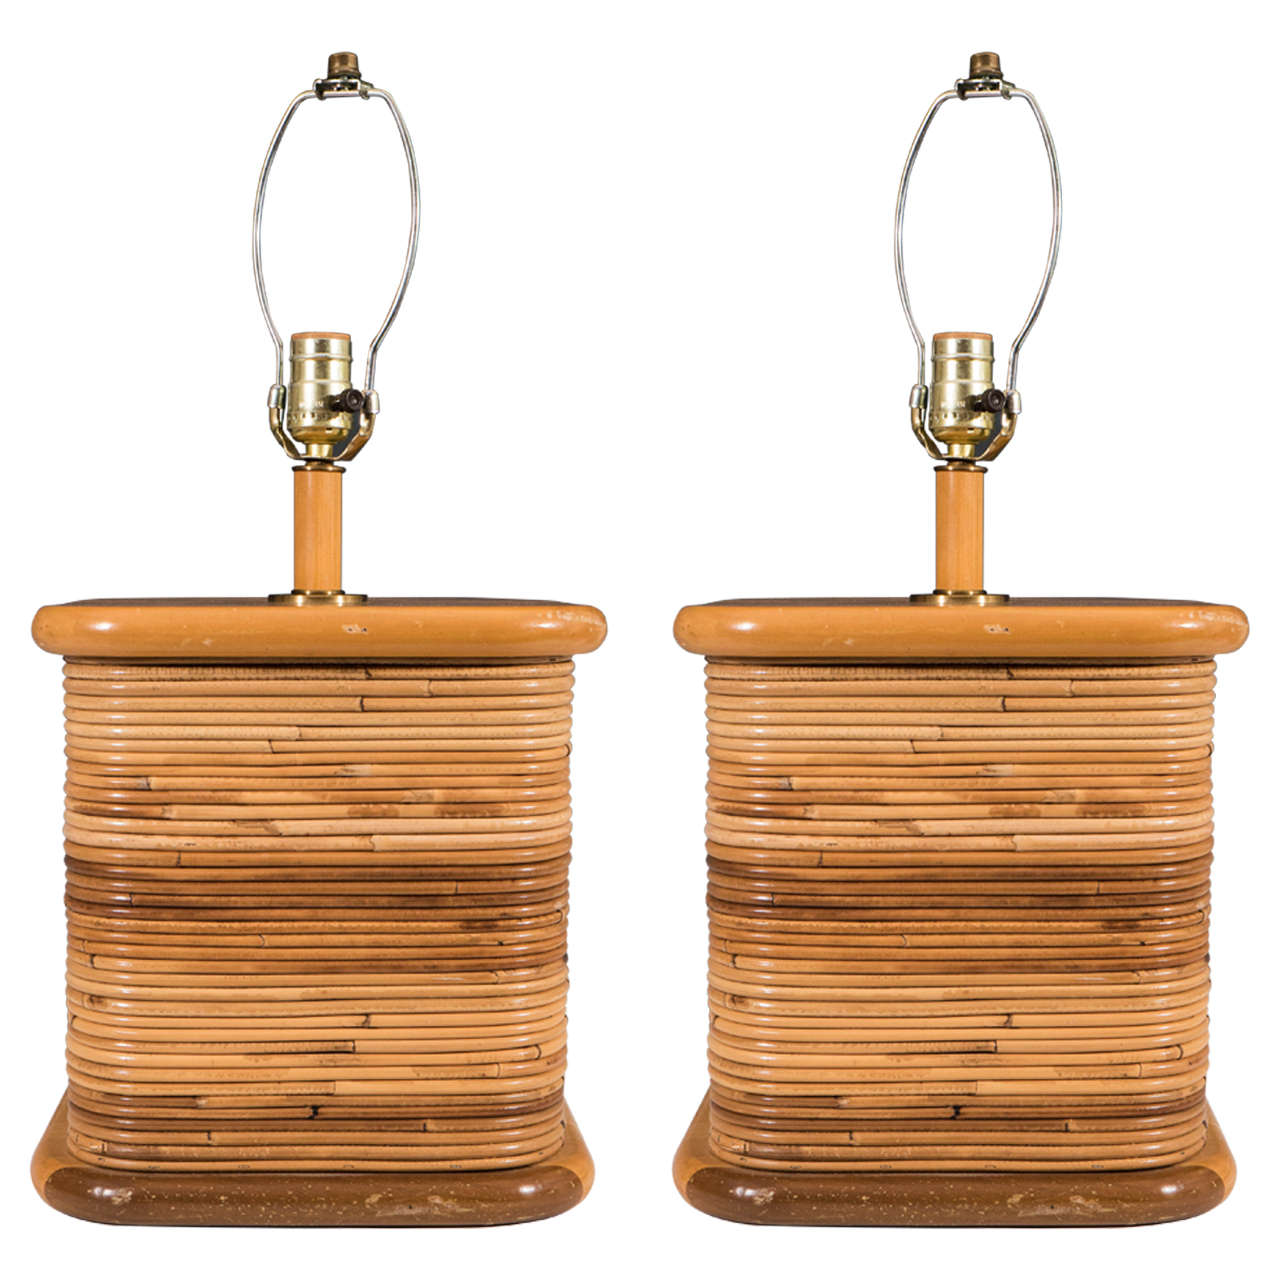 Midcentury pair of wood and rattan table lamps for sale at 1stdibs midcentury pair of wood and rattan table lamps for sale aloadofball Images